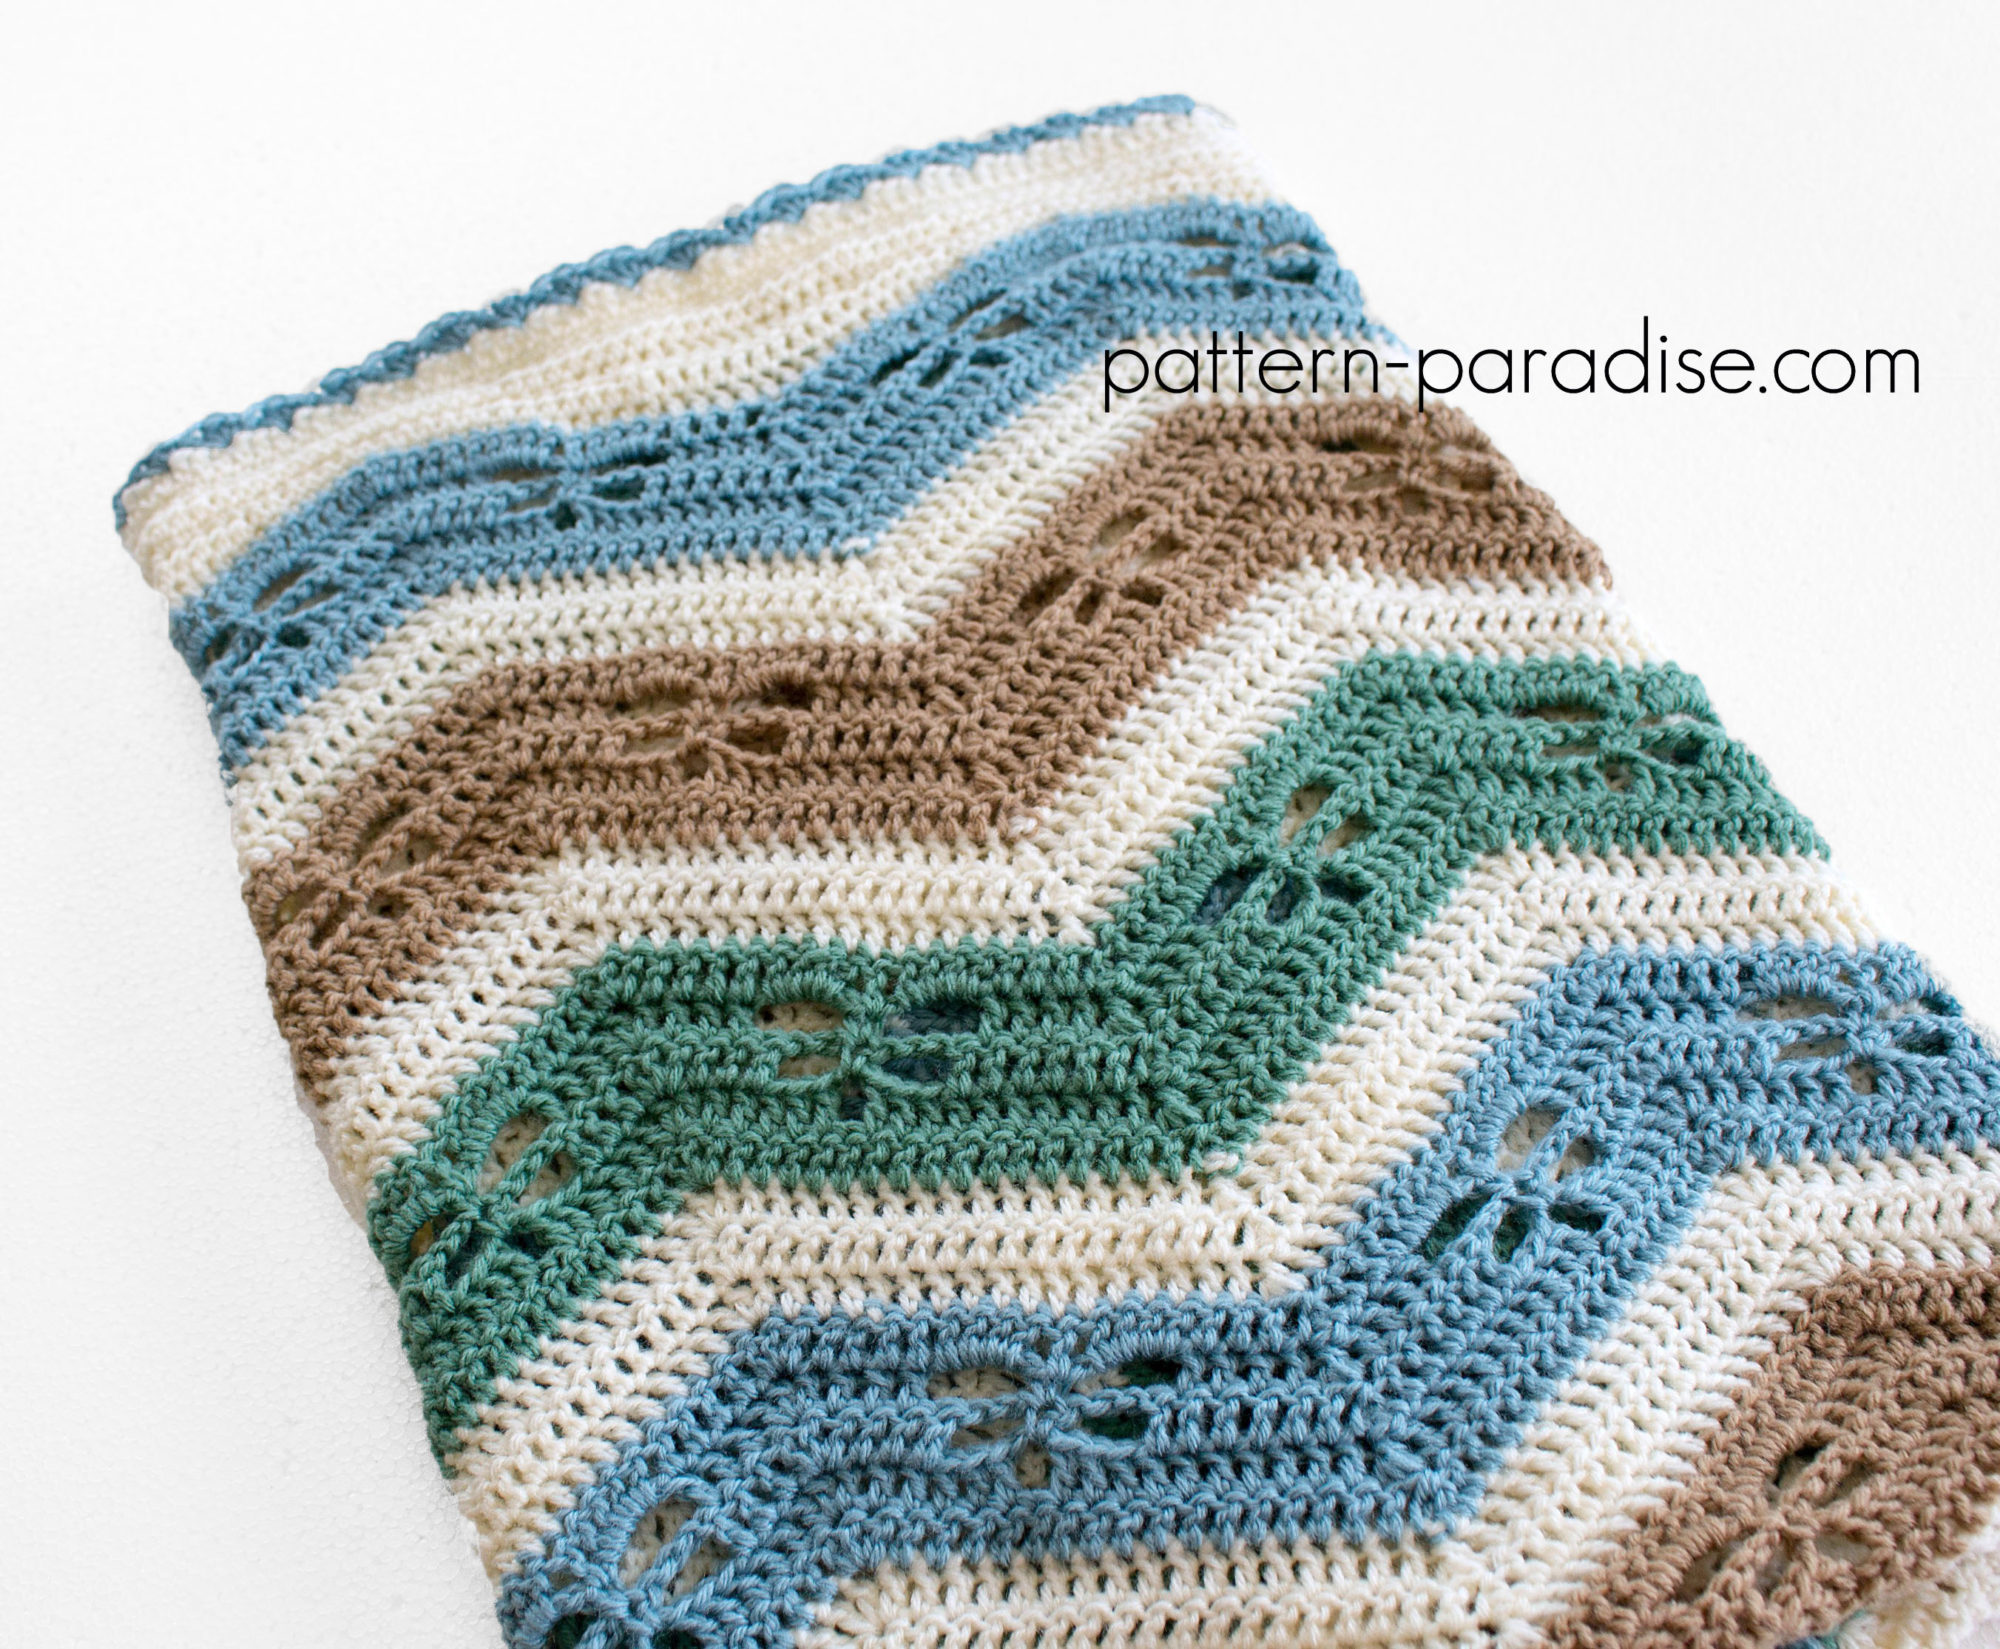 Crochet Pattern For Dragon Afghan : Free Crochet Pattern: Dragonfly Chevron Baby Blanket ...